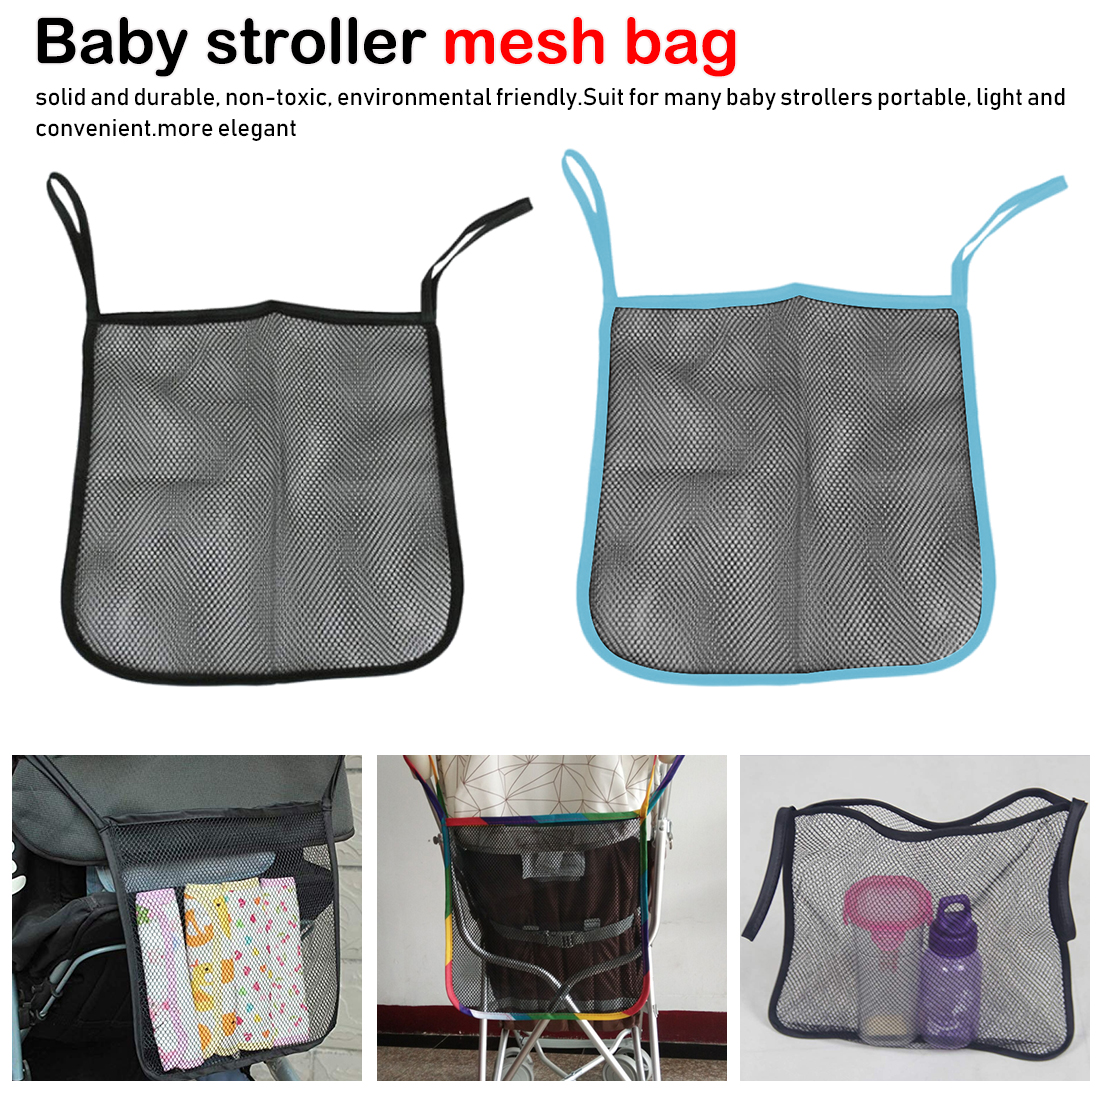 Hot Infant Pram Cart Mesh Hanging Storage Bag Baby Trolley Bag Stroller Organizer Seat Pocket Carriage Bag Stroller Accessories